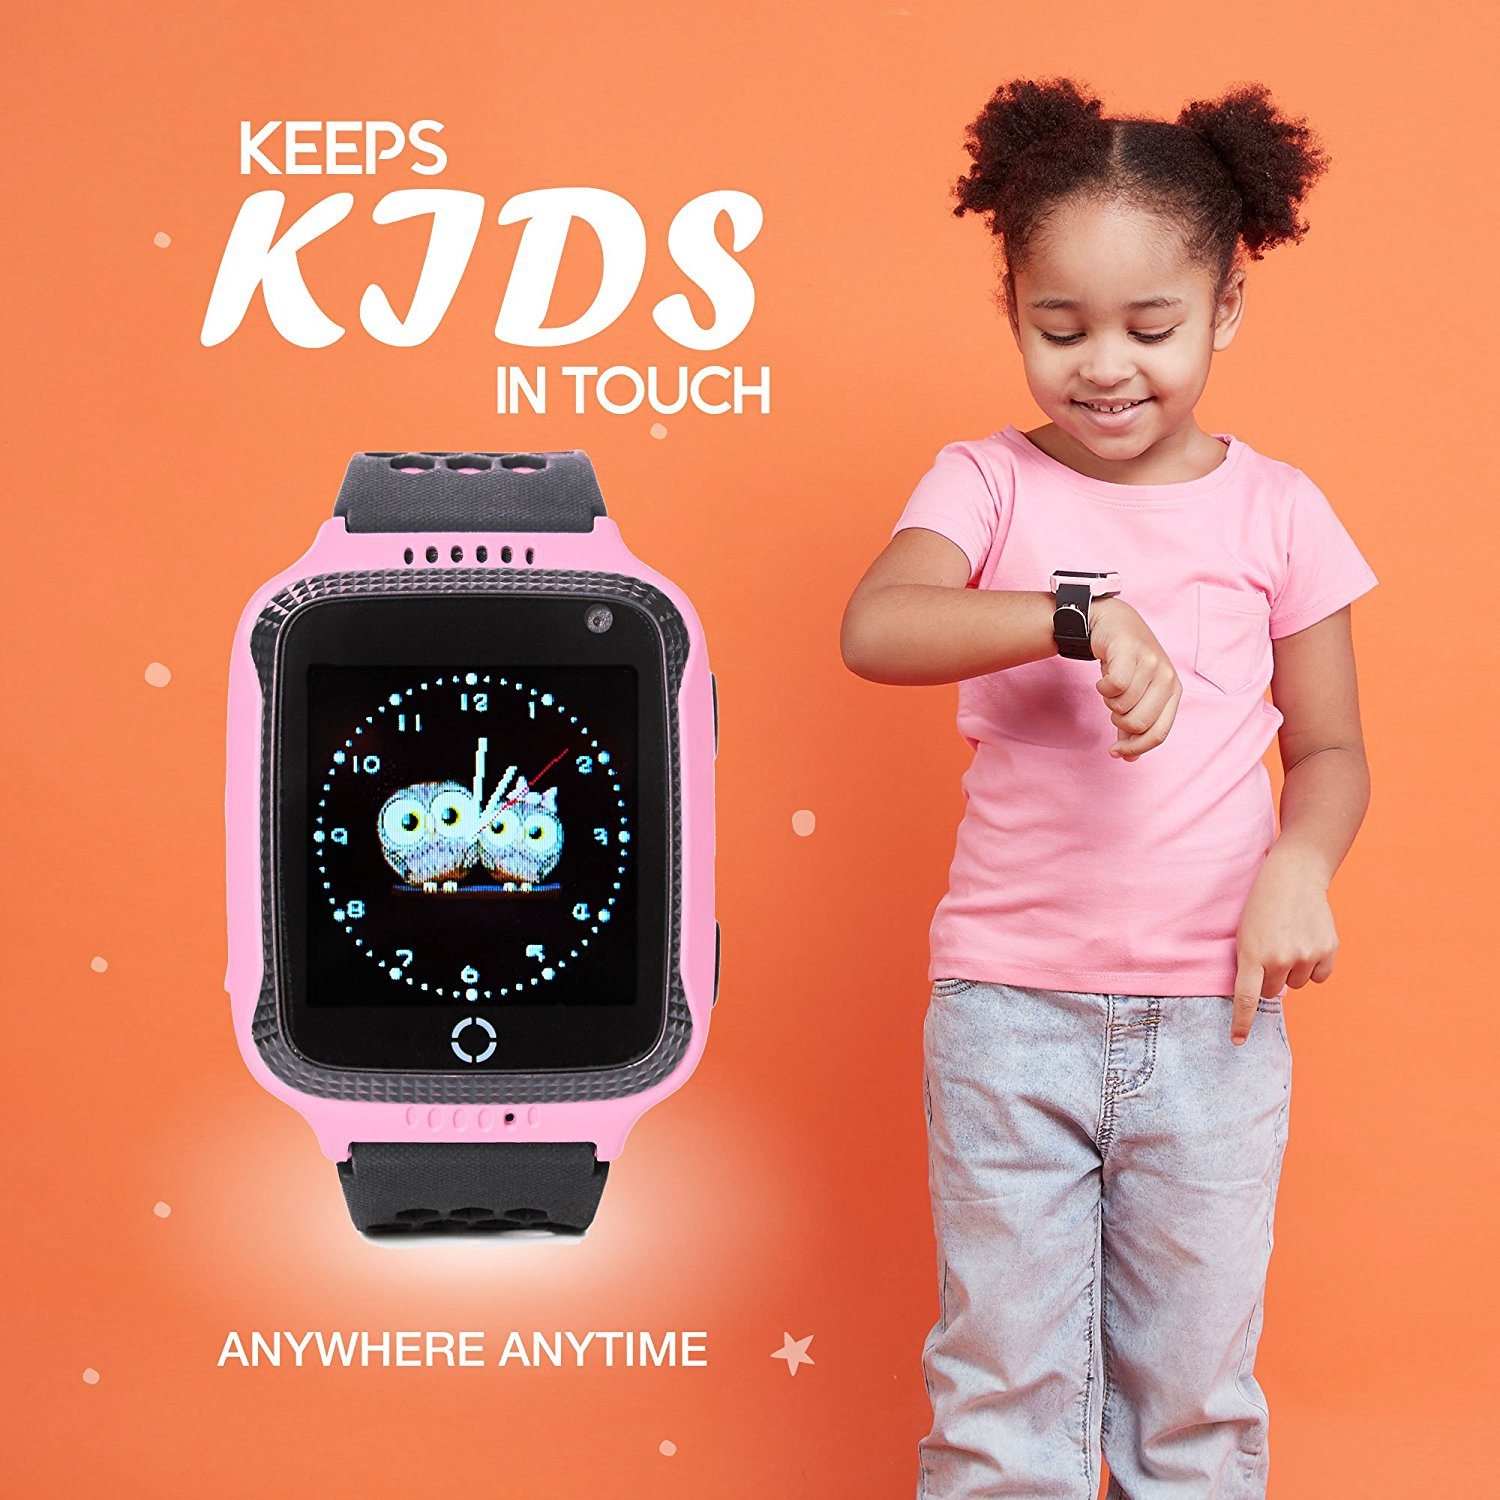 Smart Watch For Kids Boys Girls Fitness Baby Phone Touch Screen With GPS Tracking Tracker Children SOS Call Camera Blue Pink in Smart Watches from Consumer Electronics